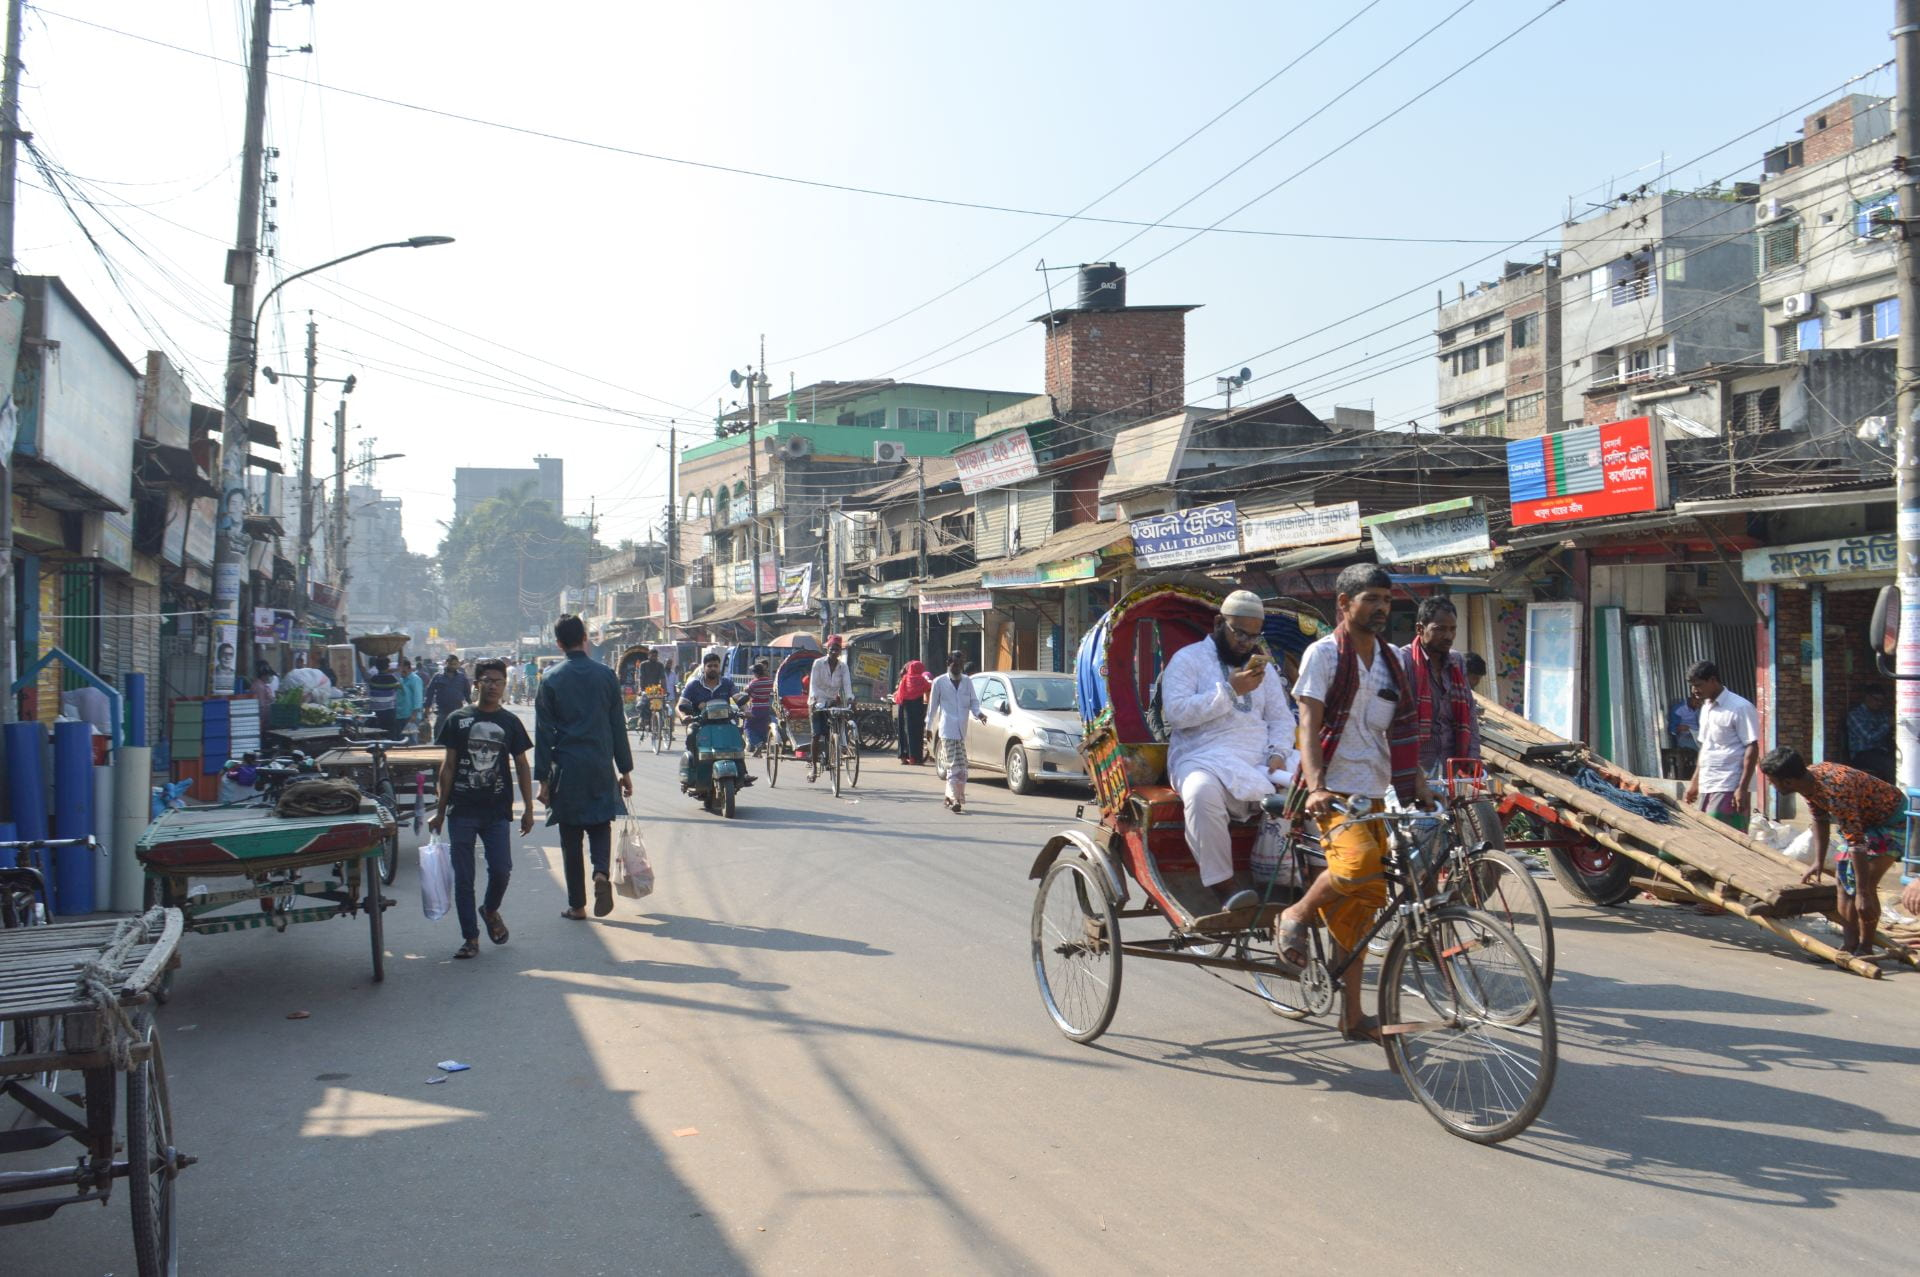 People in the street in Dhaka, Bangladesh.